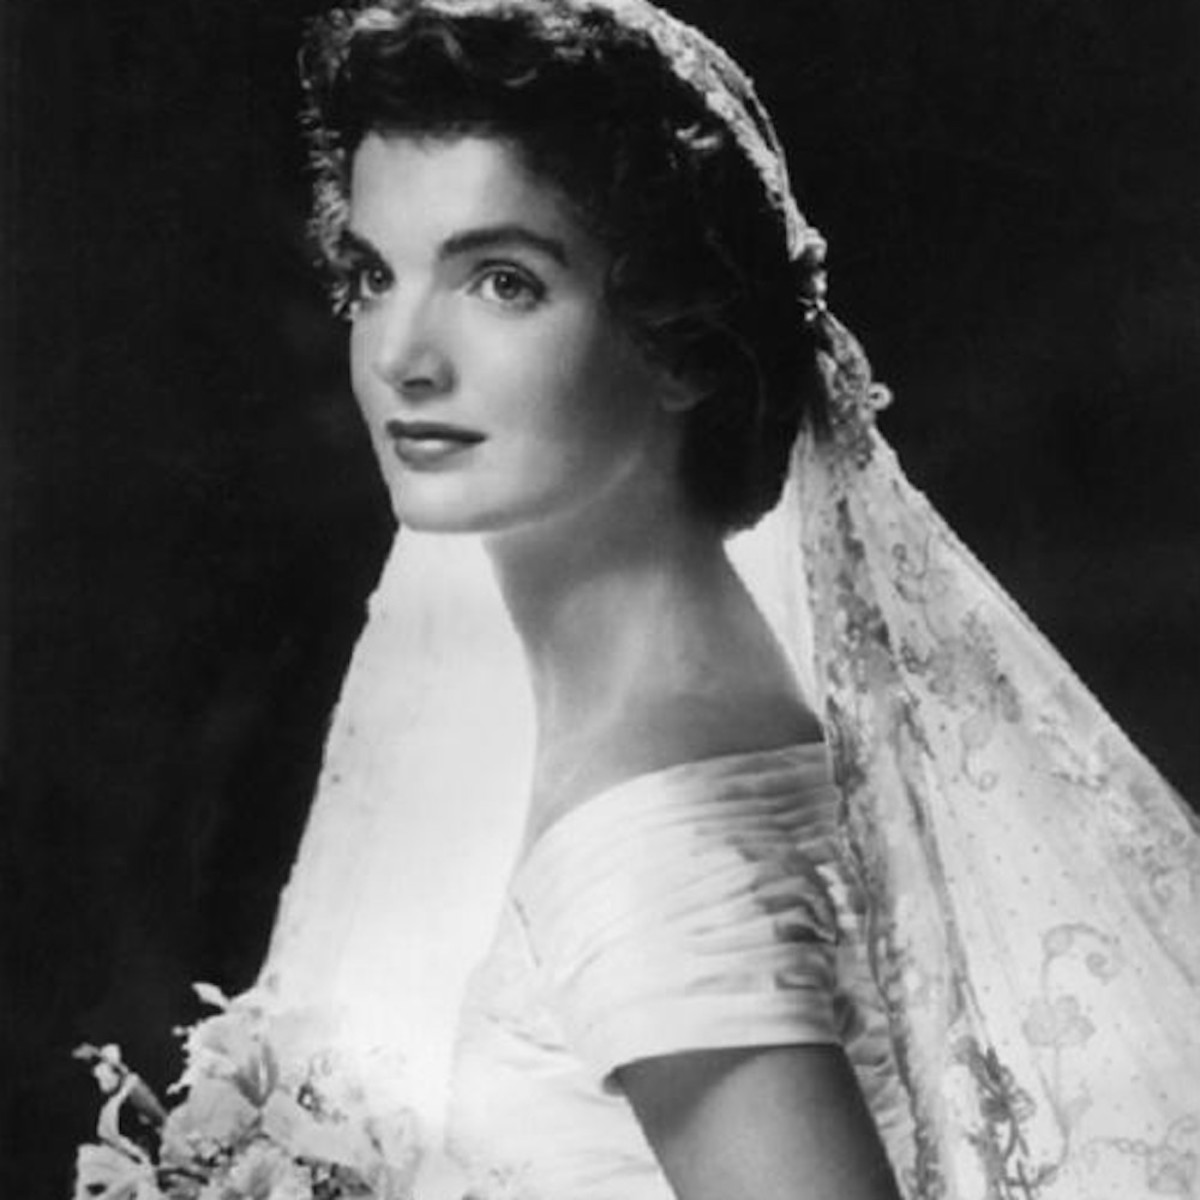 Jackie Kennedy - The American Queen